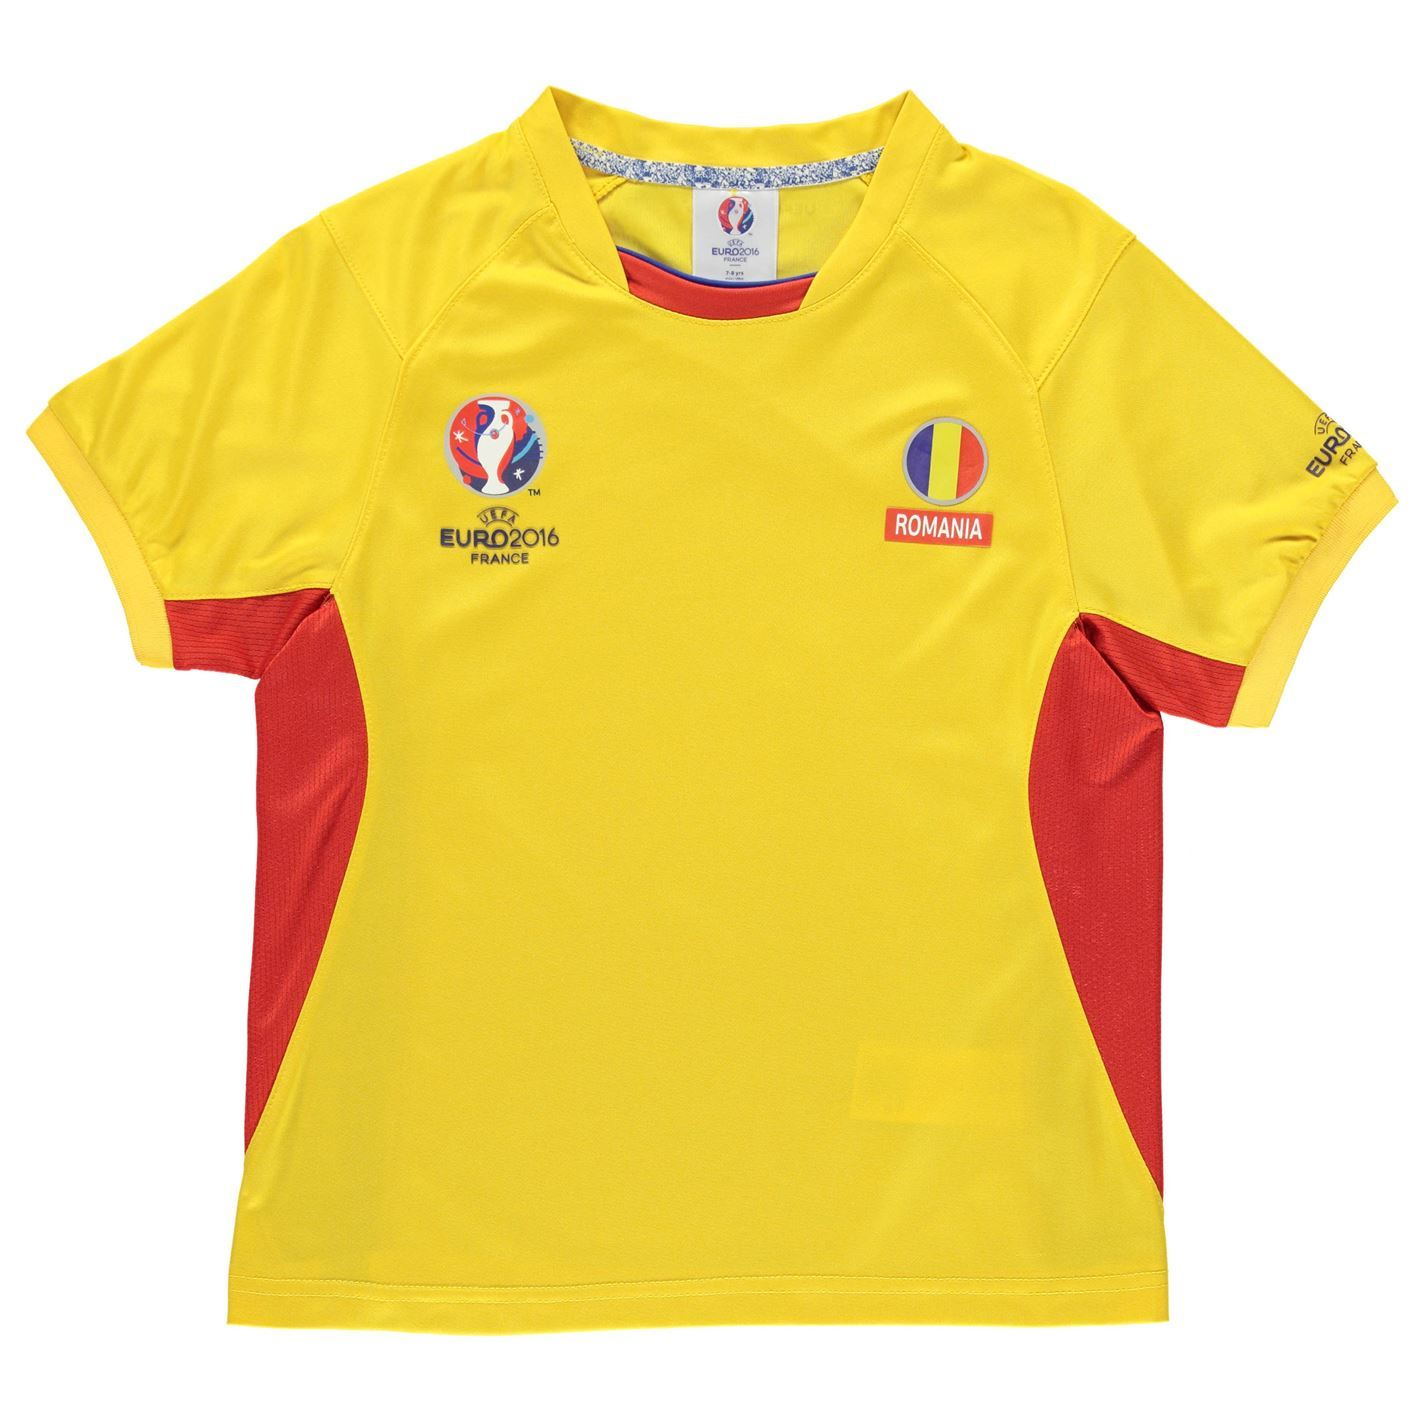 Uefa euro 2016 romania poly t shirt juniors boys yellow for Boys soccer t shirts